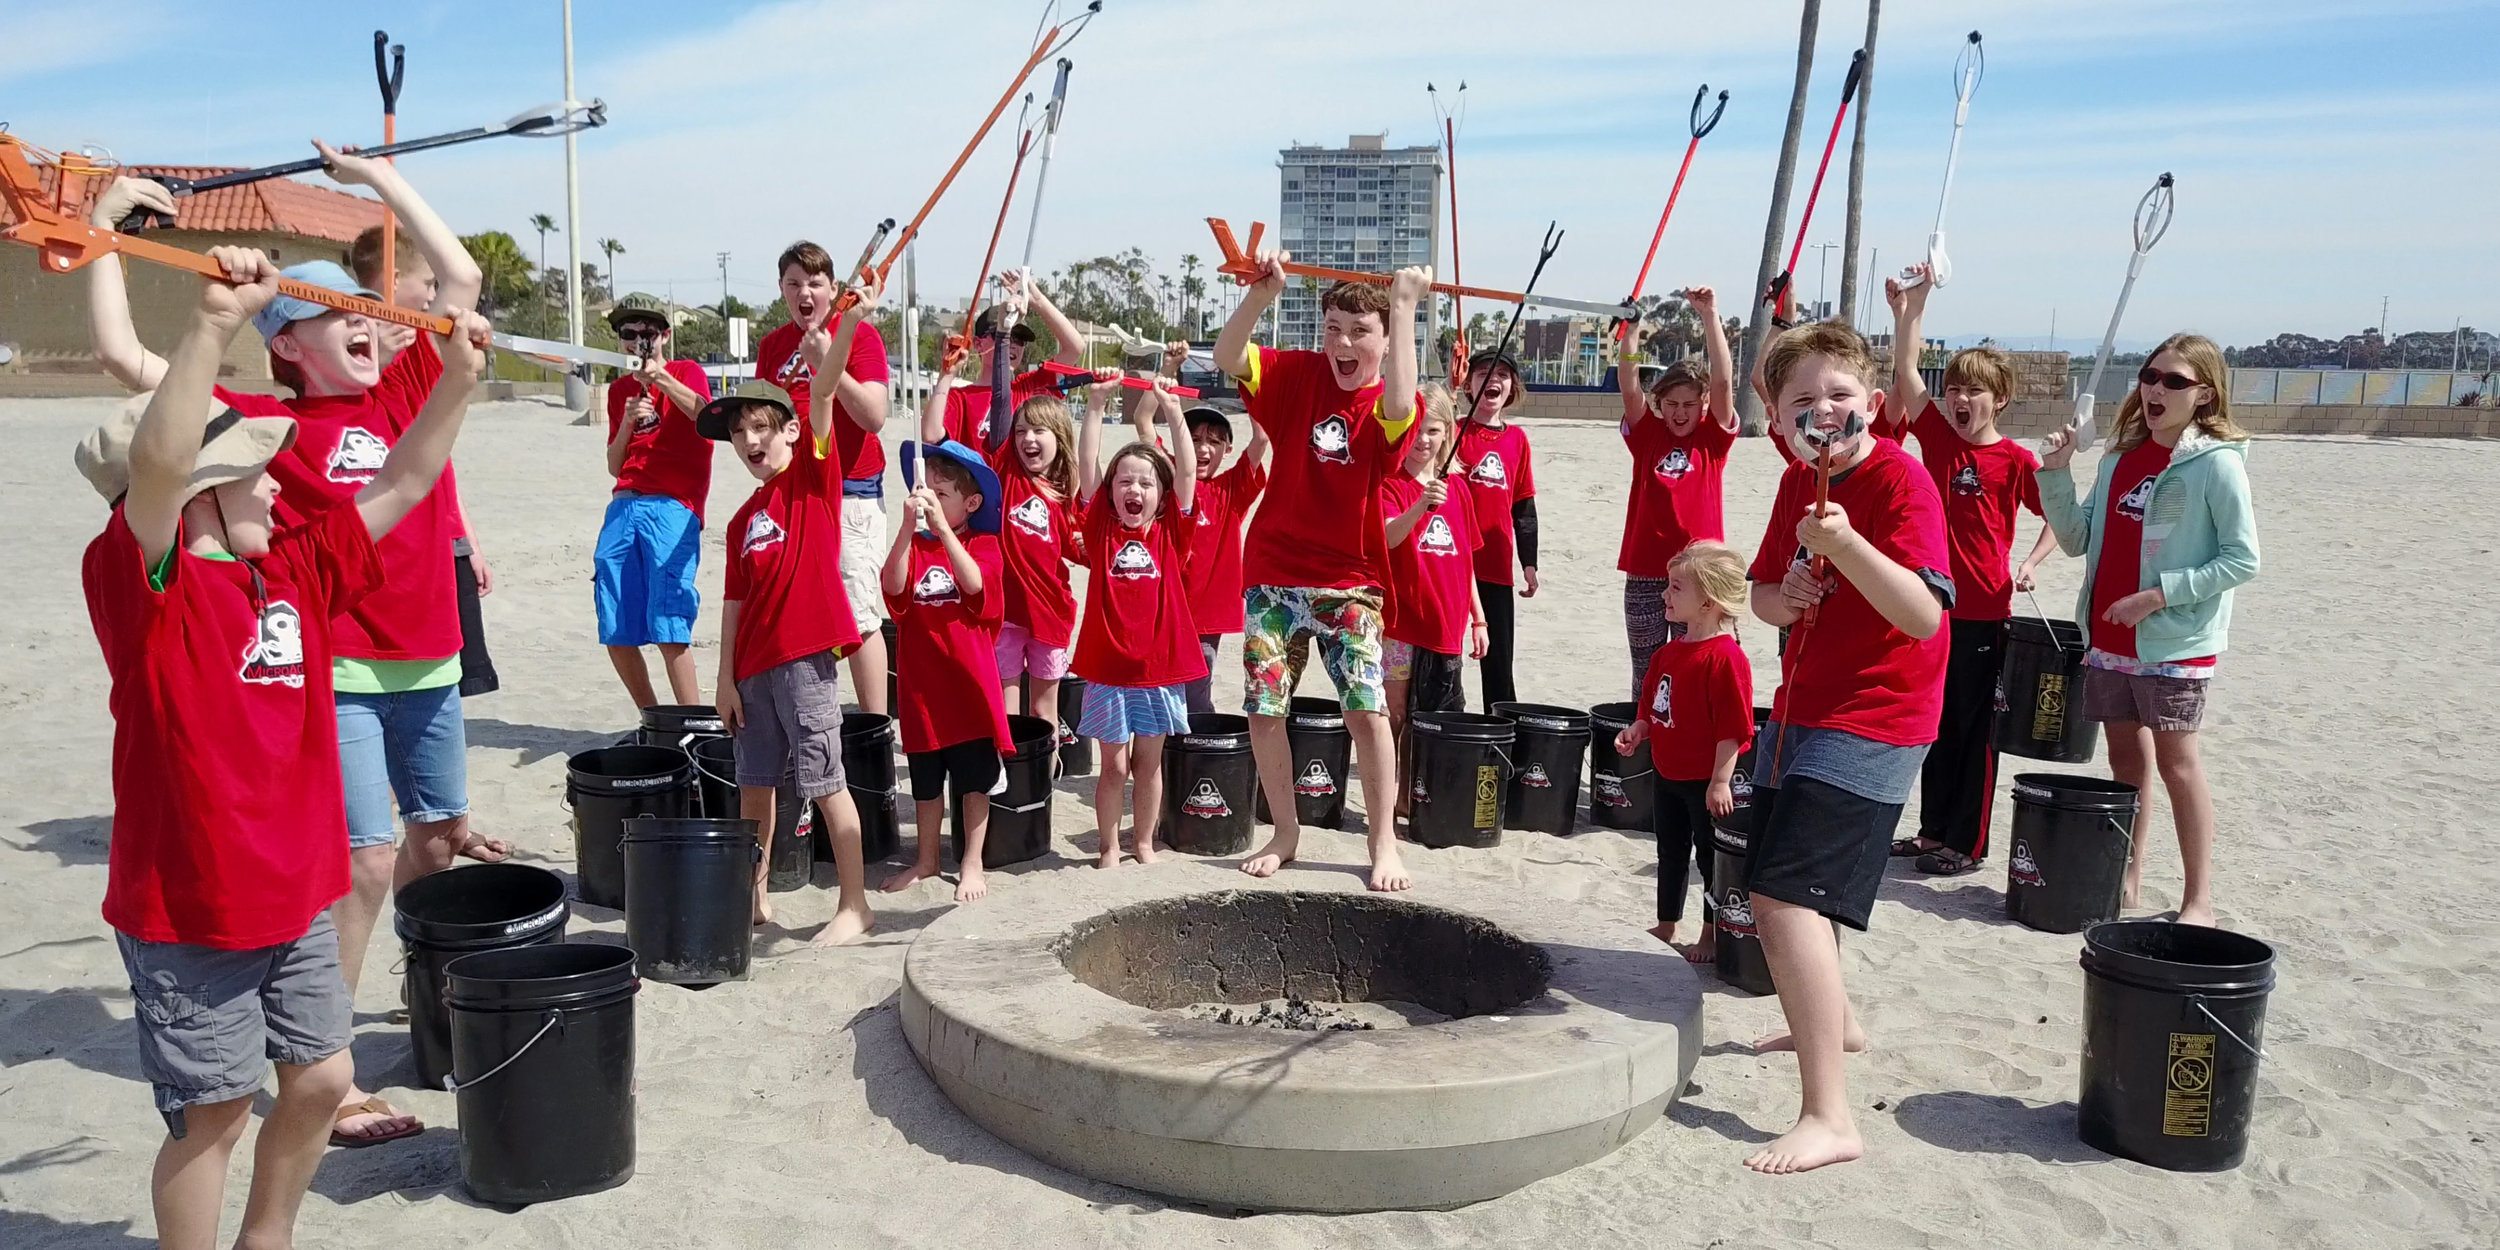 5 -Beach Cleanup - Microactivsts battle cry.jpg